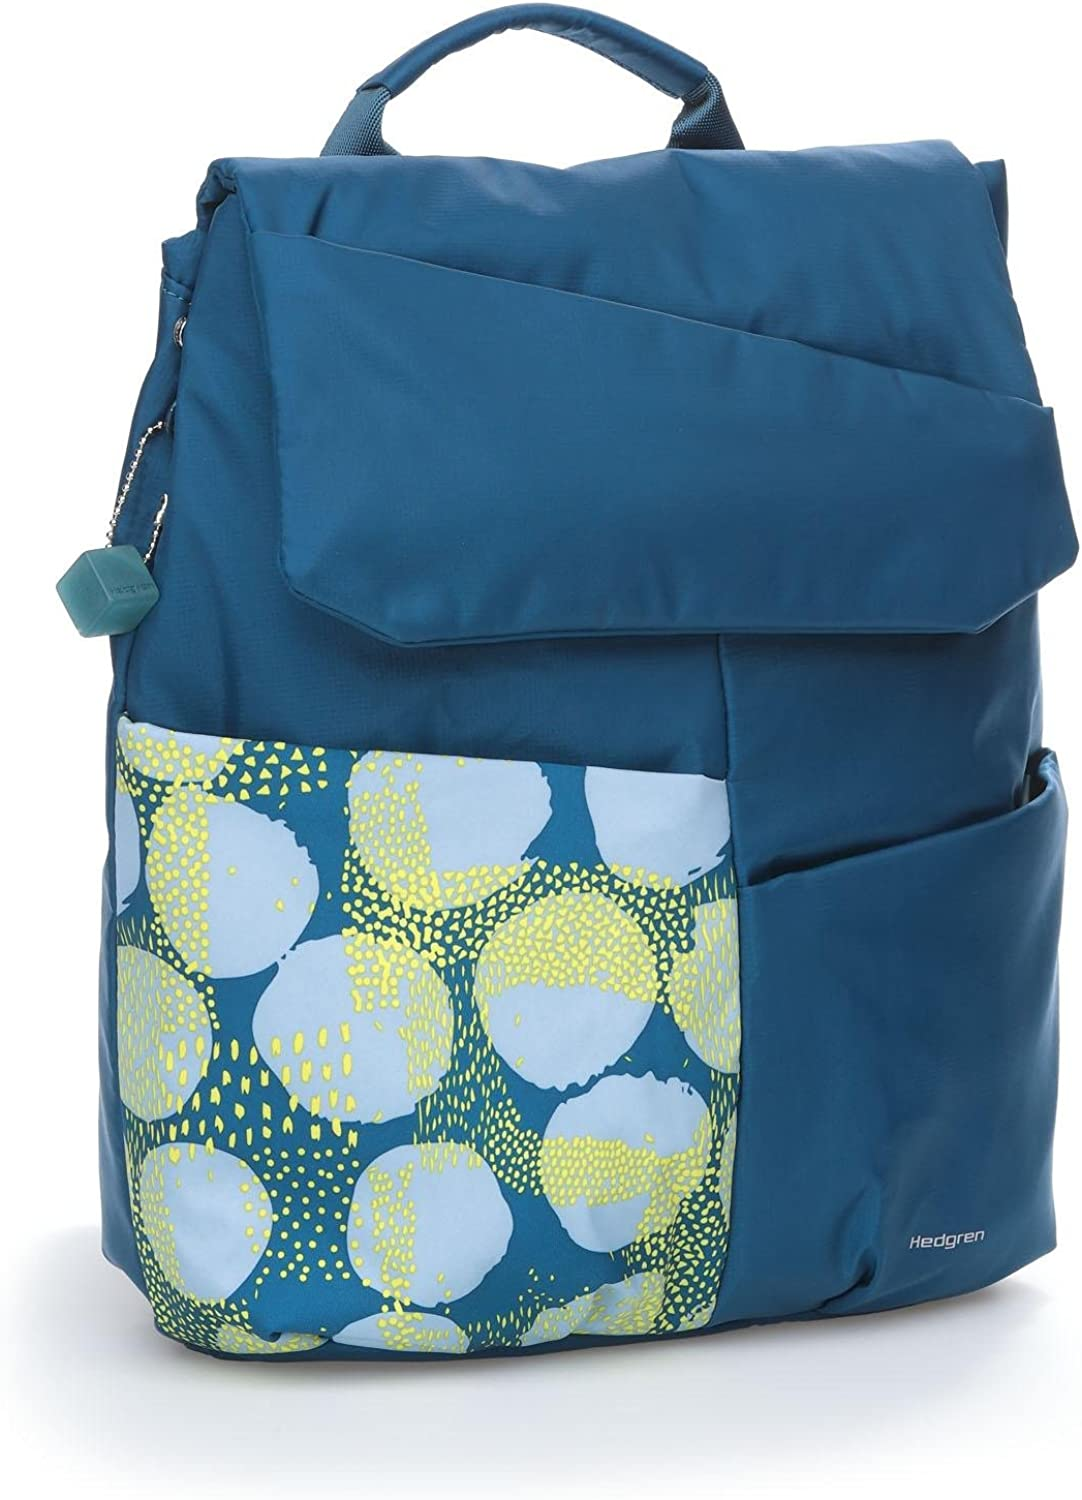 Hedgren Pelvic-2 Way Backpack